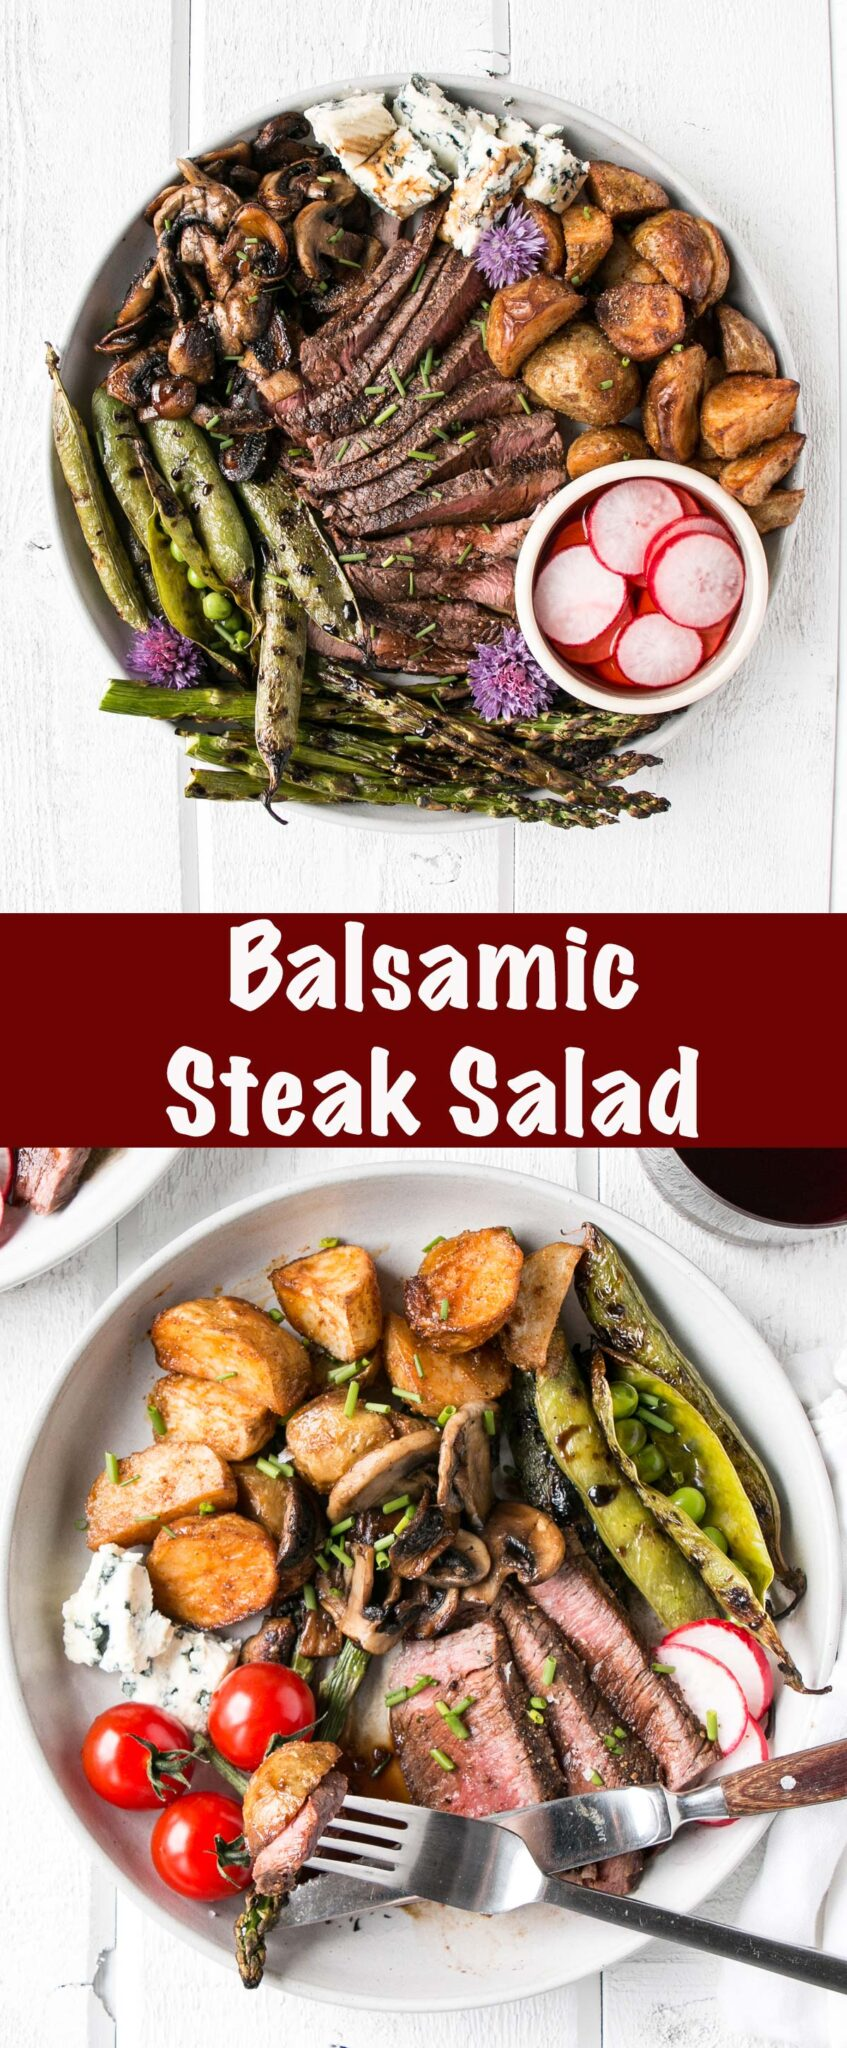 Balsamic Steak Salad long collage